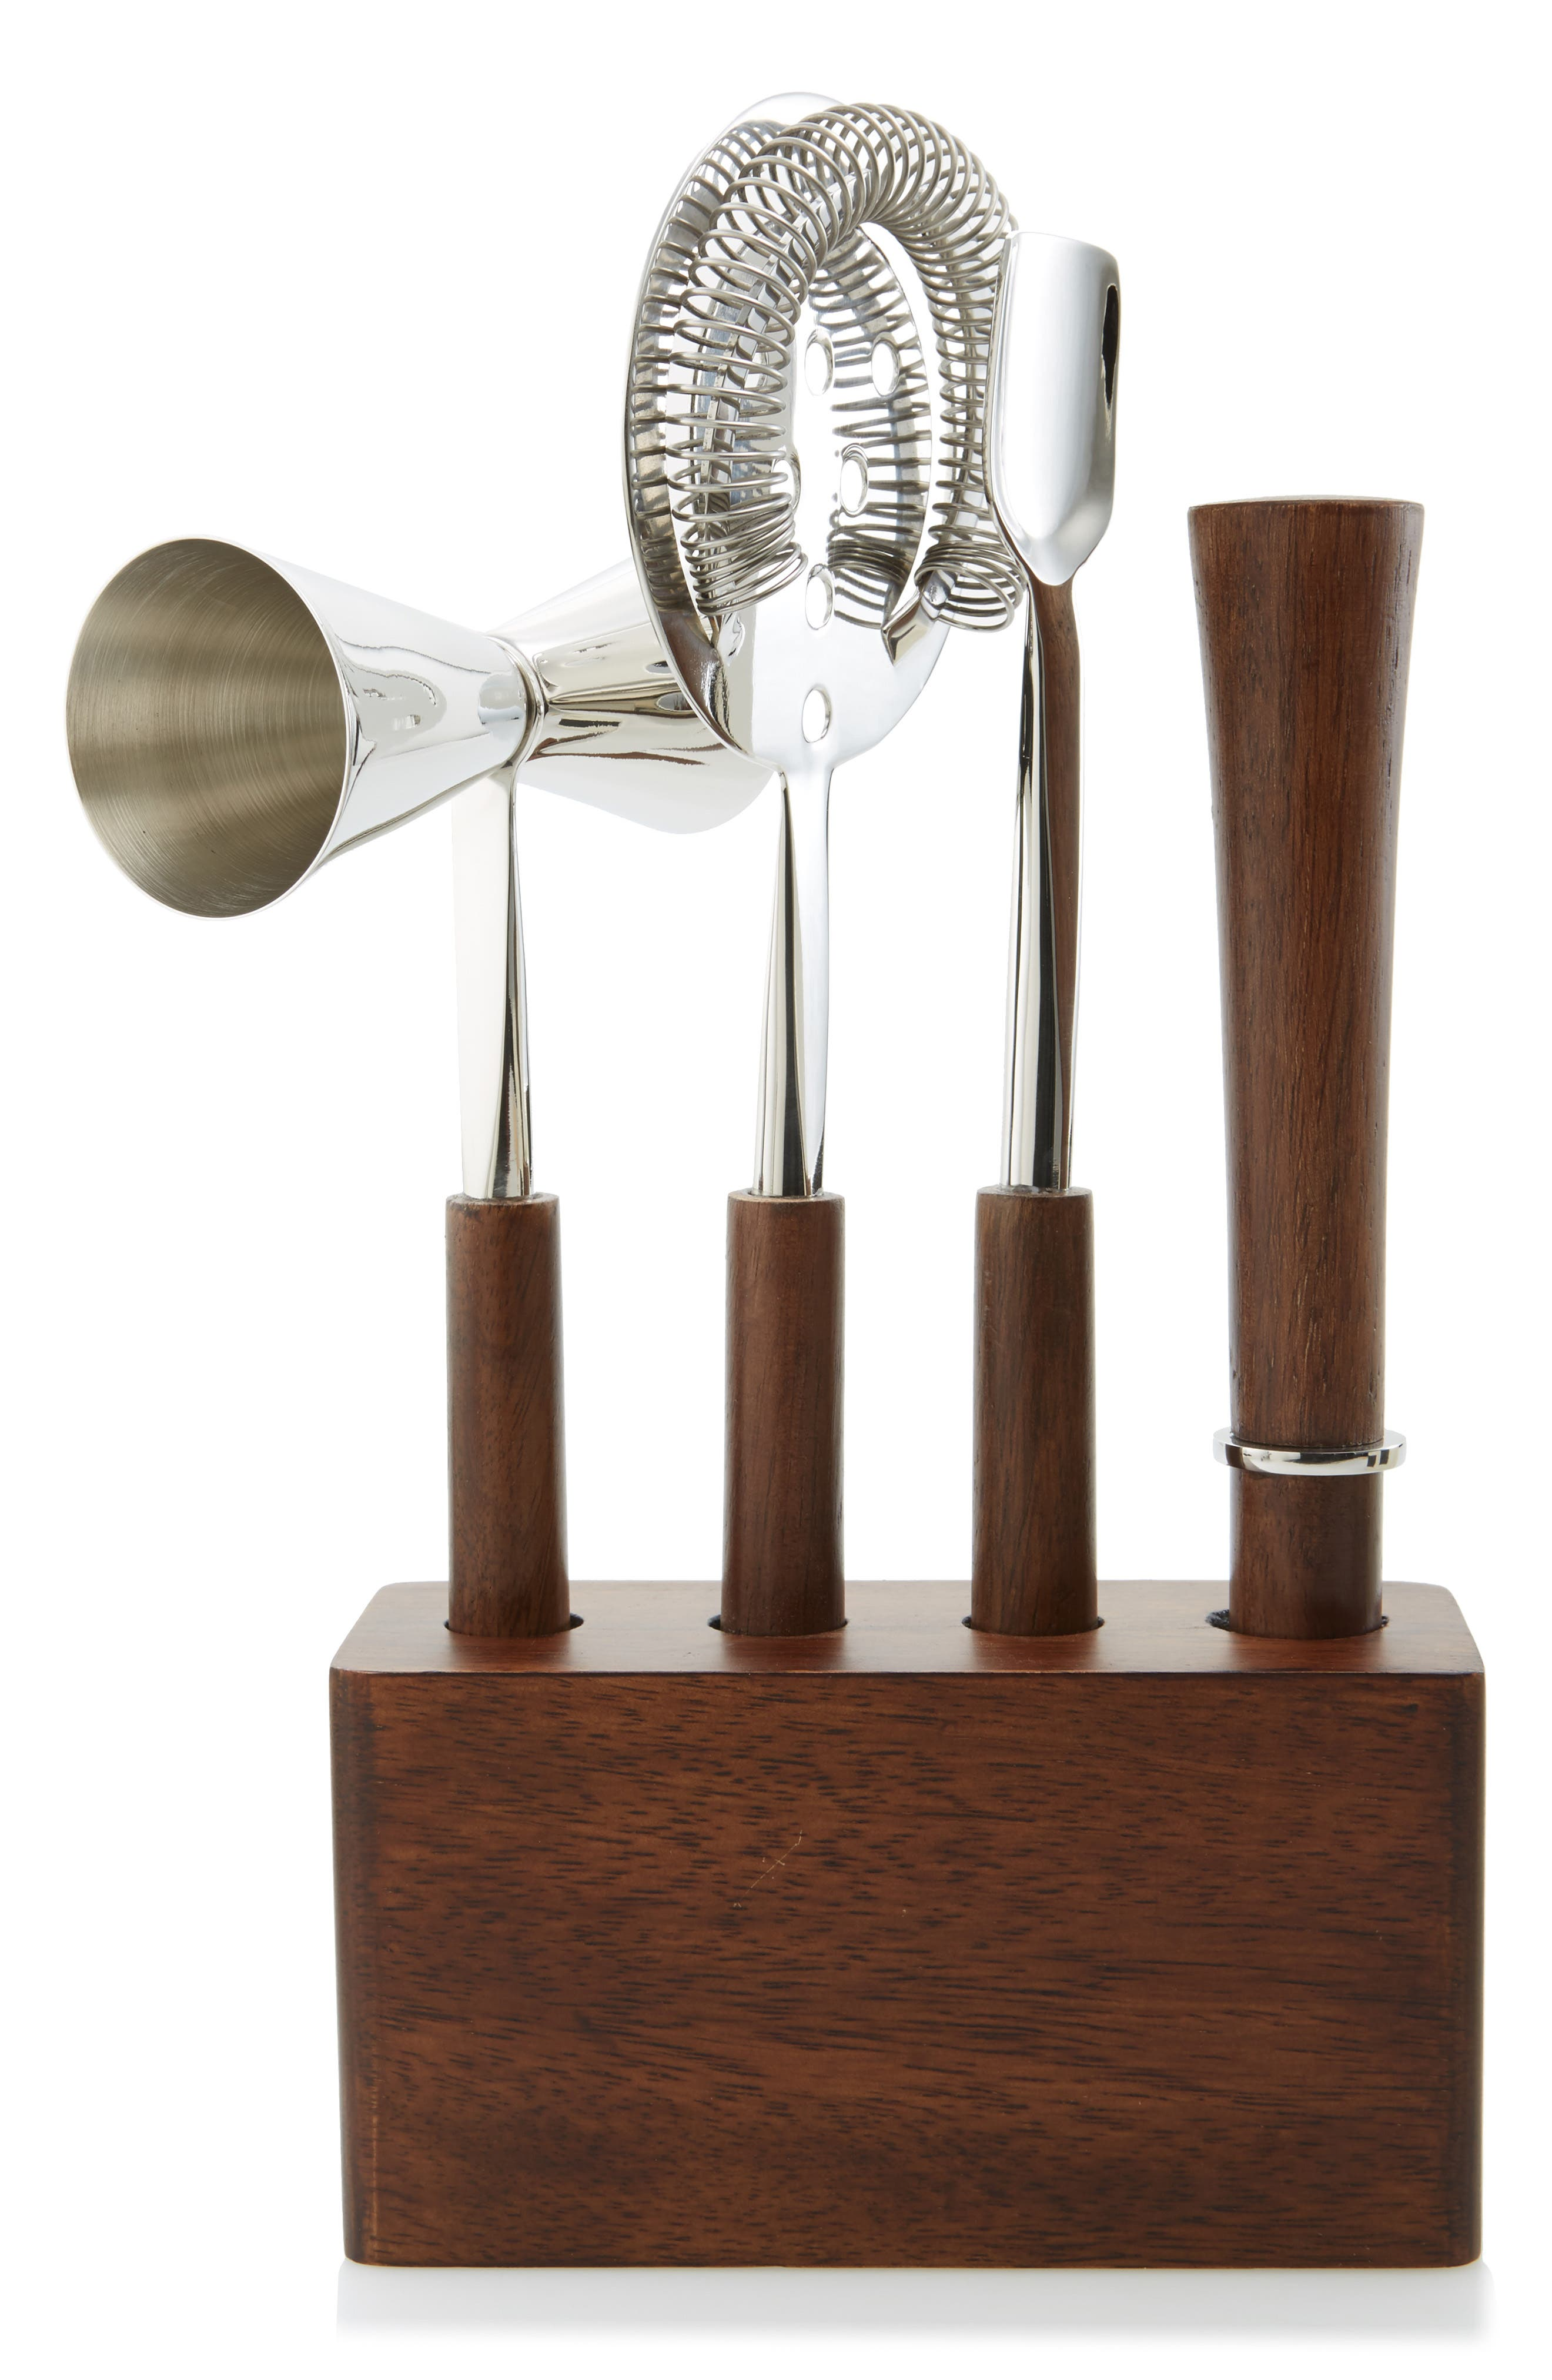 4-Piece Stainless Steel & Wood Bar Set,                             Main thumbnail 1, color,